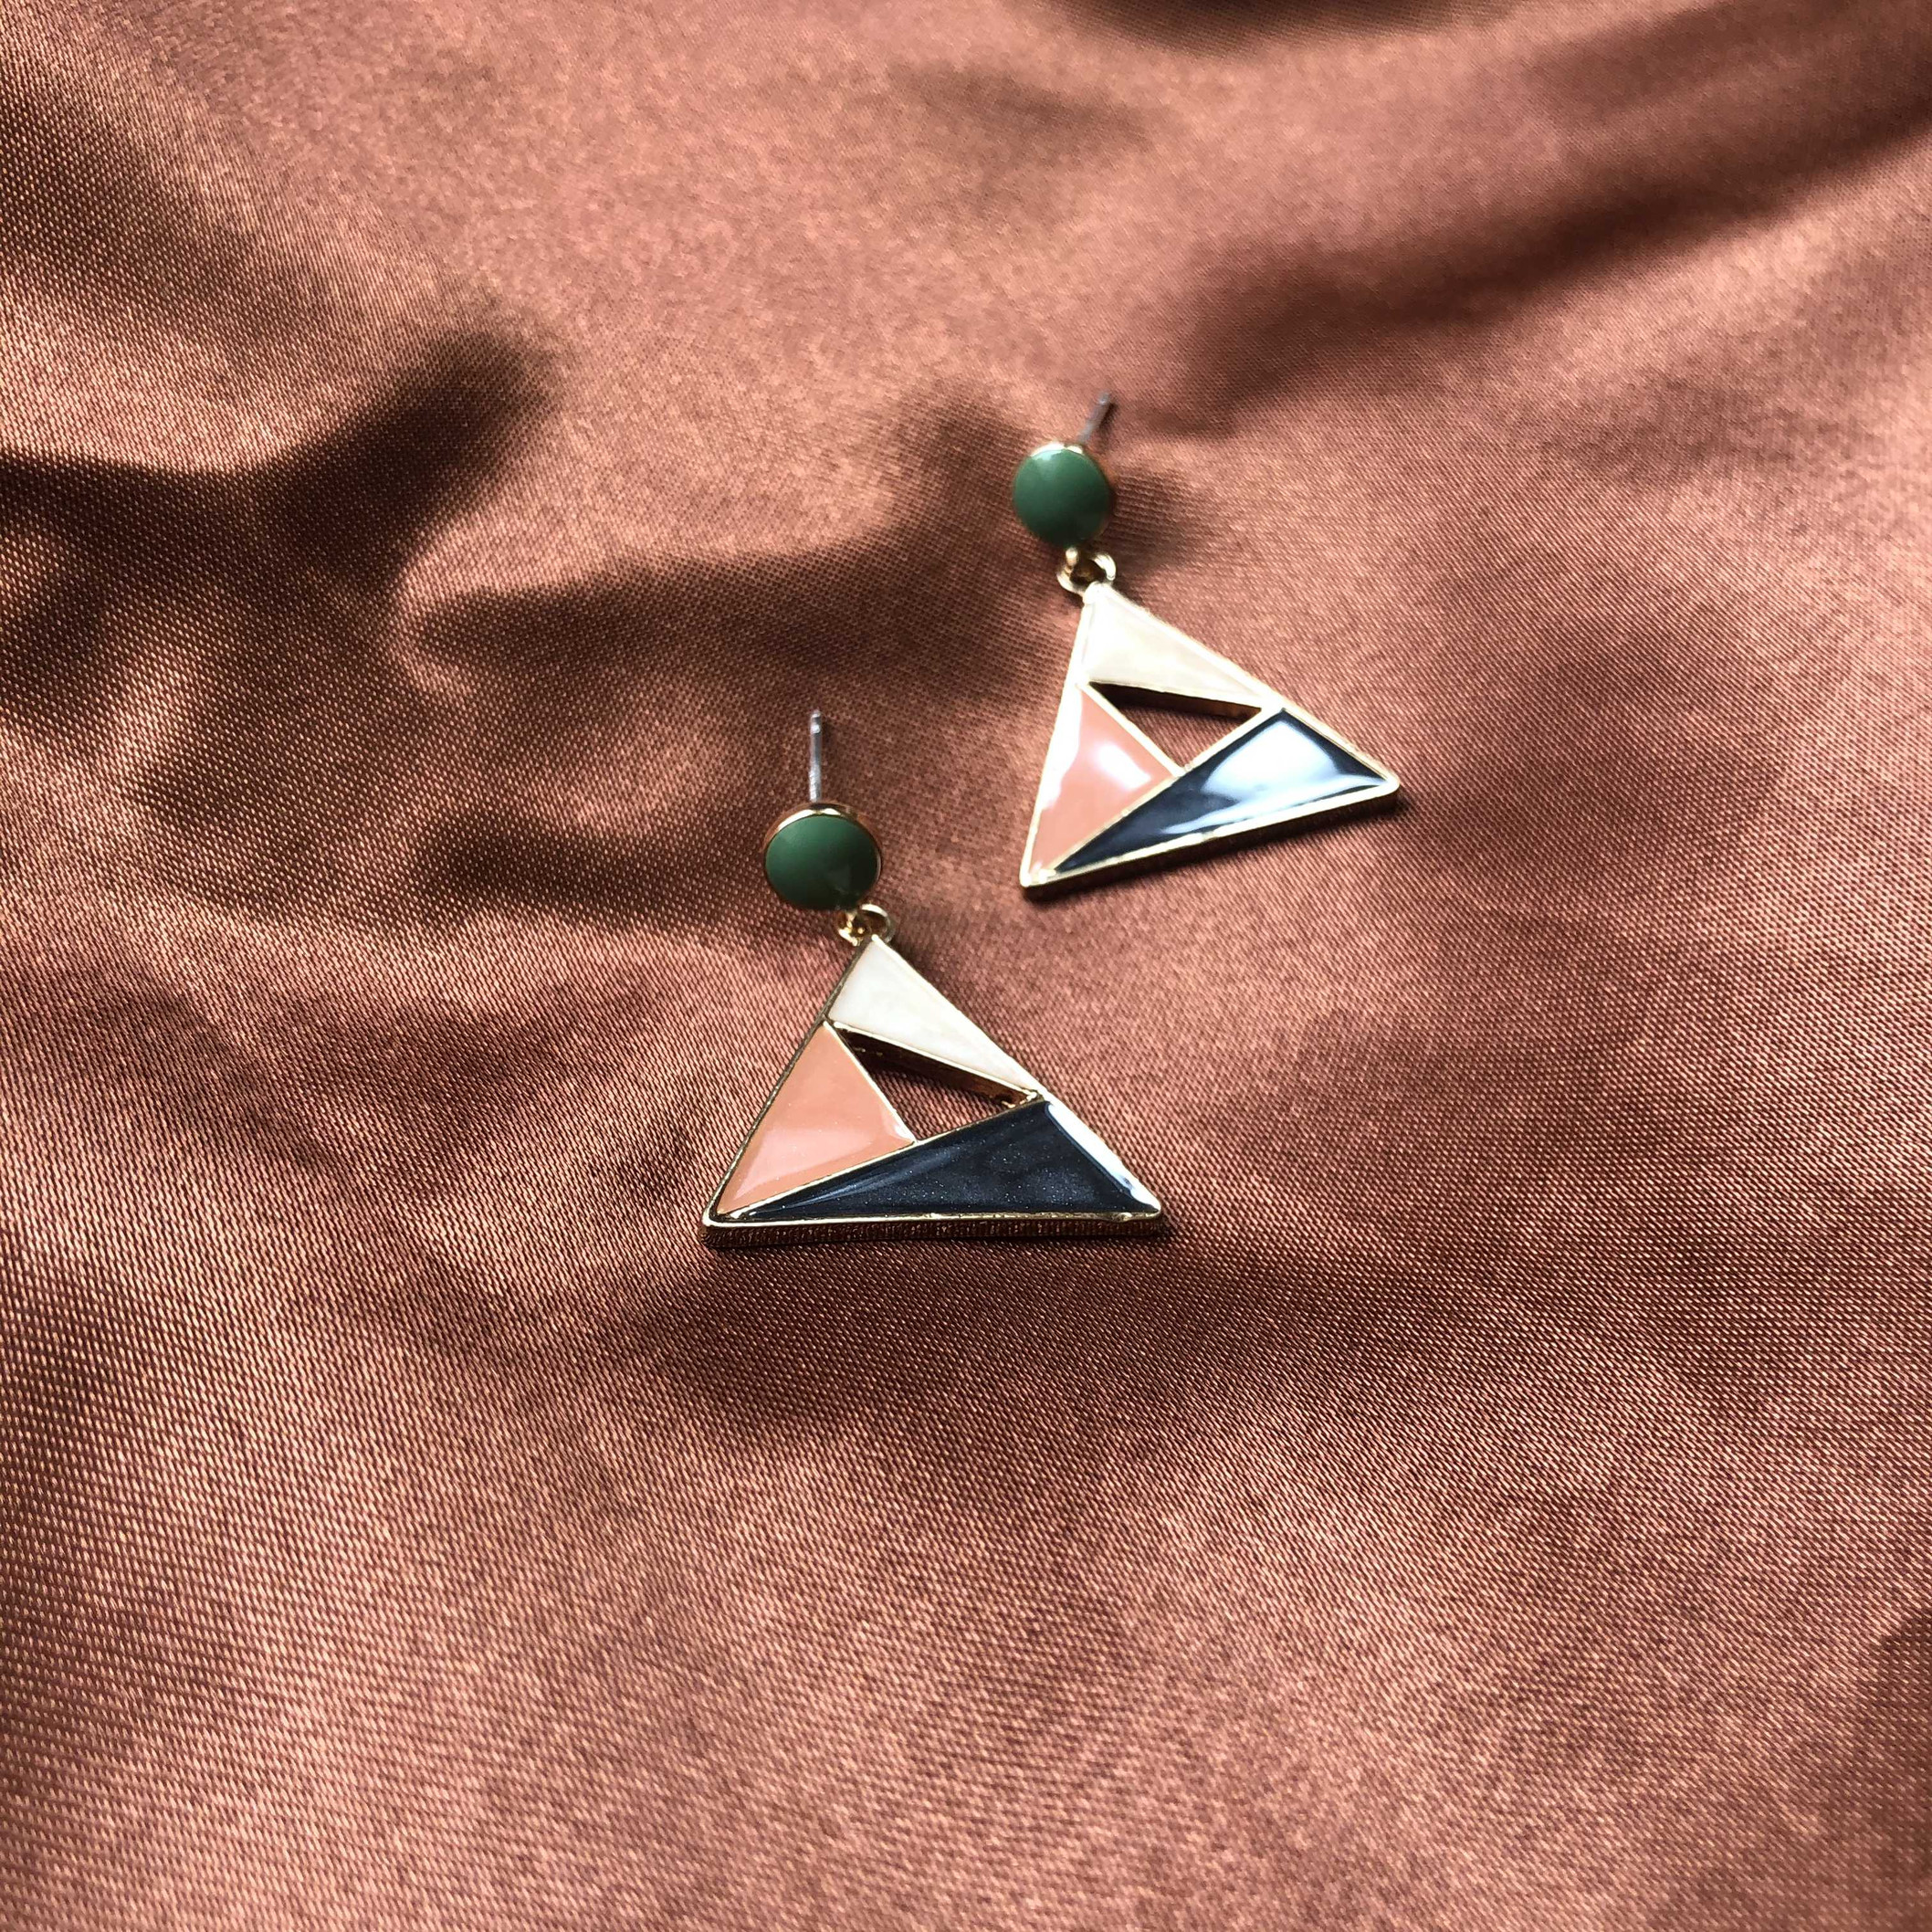 New product 2020 creative design new color contrast star Triangle Earrings S925 light luxury versatile temperament